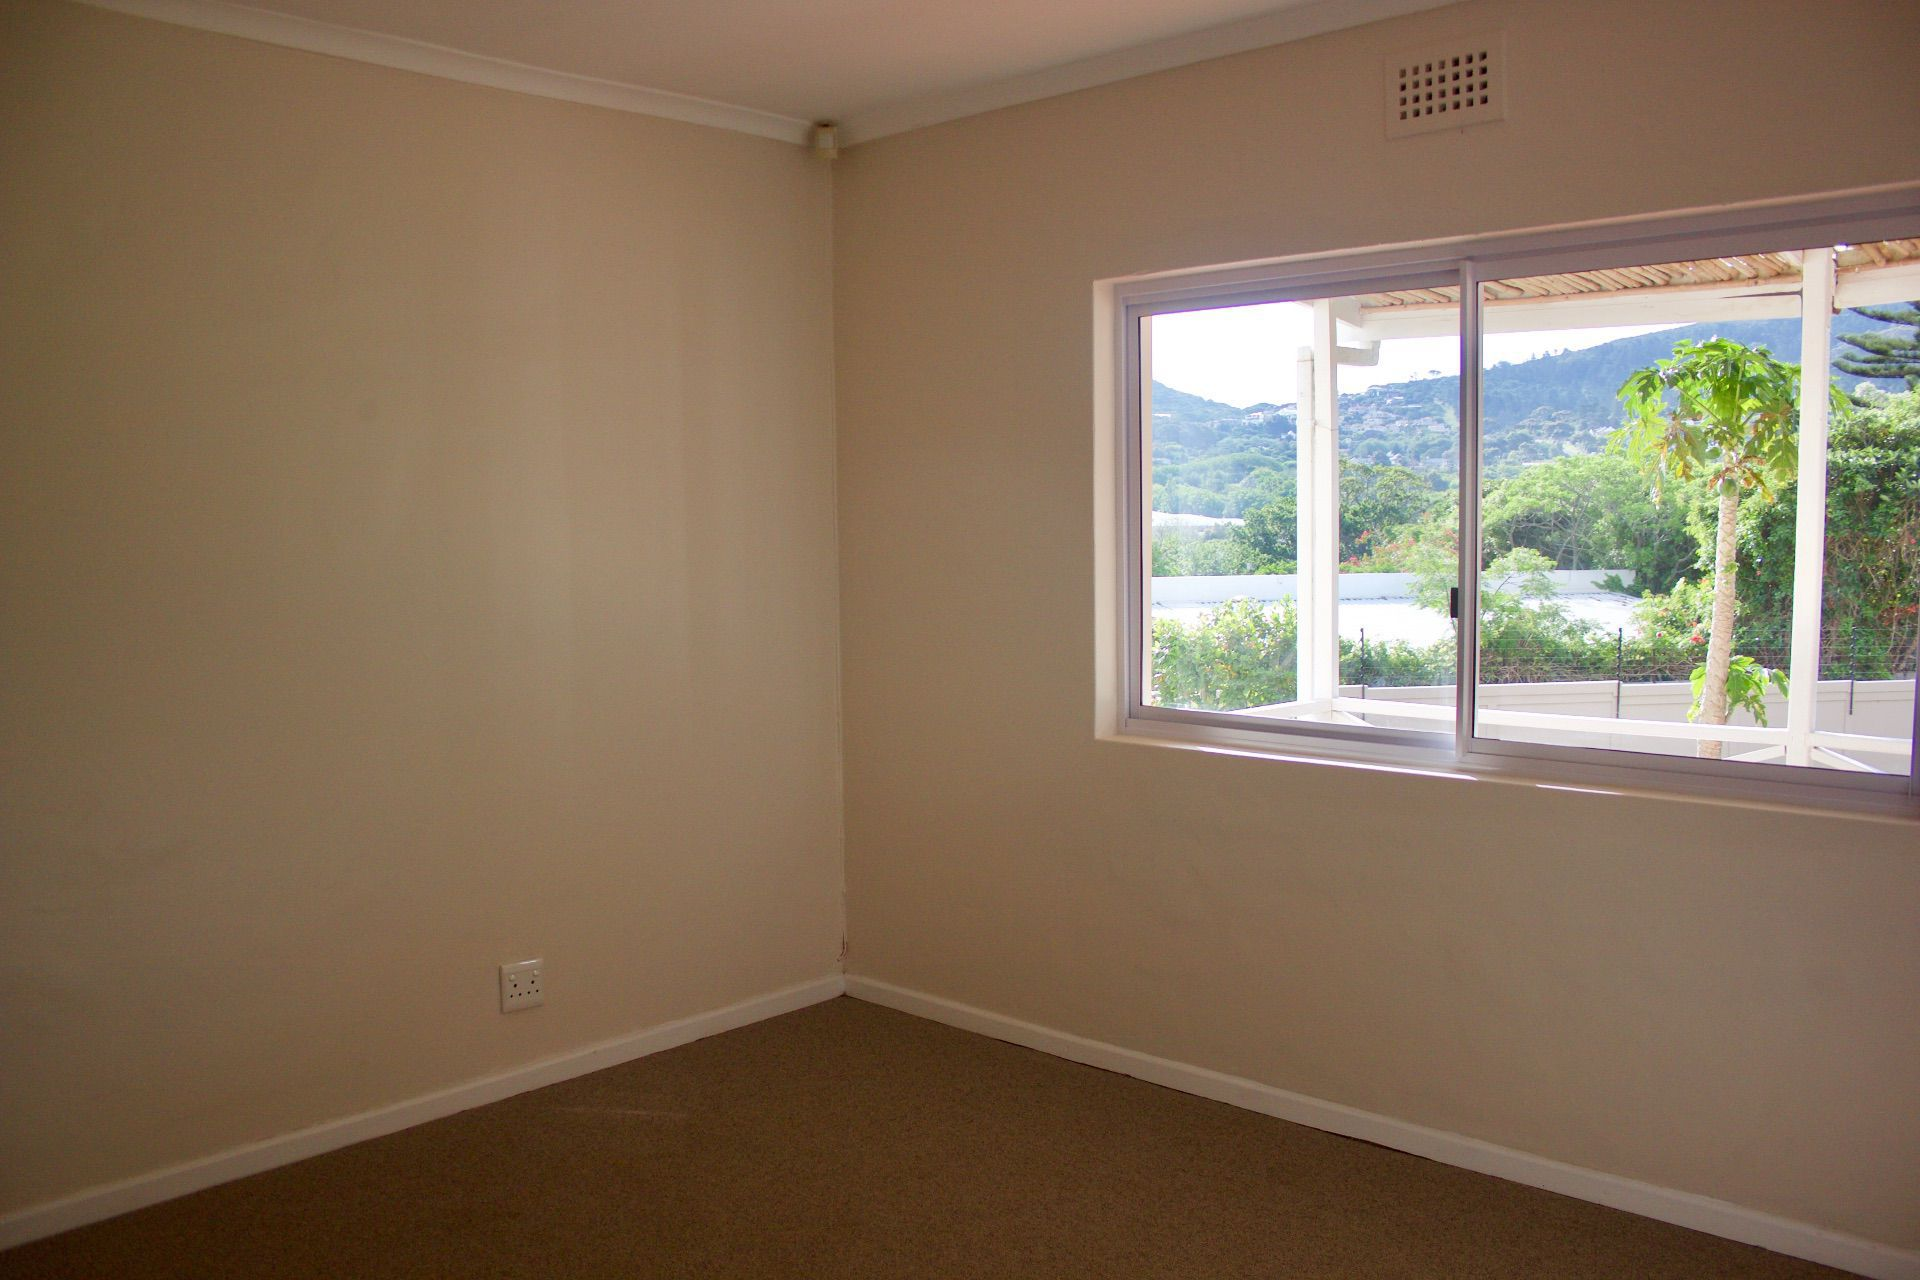 House in Hout Bay - bedroom 2